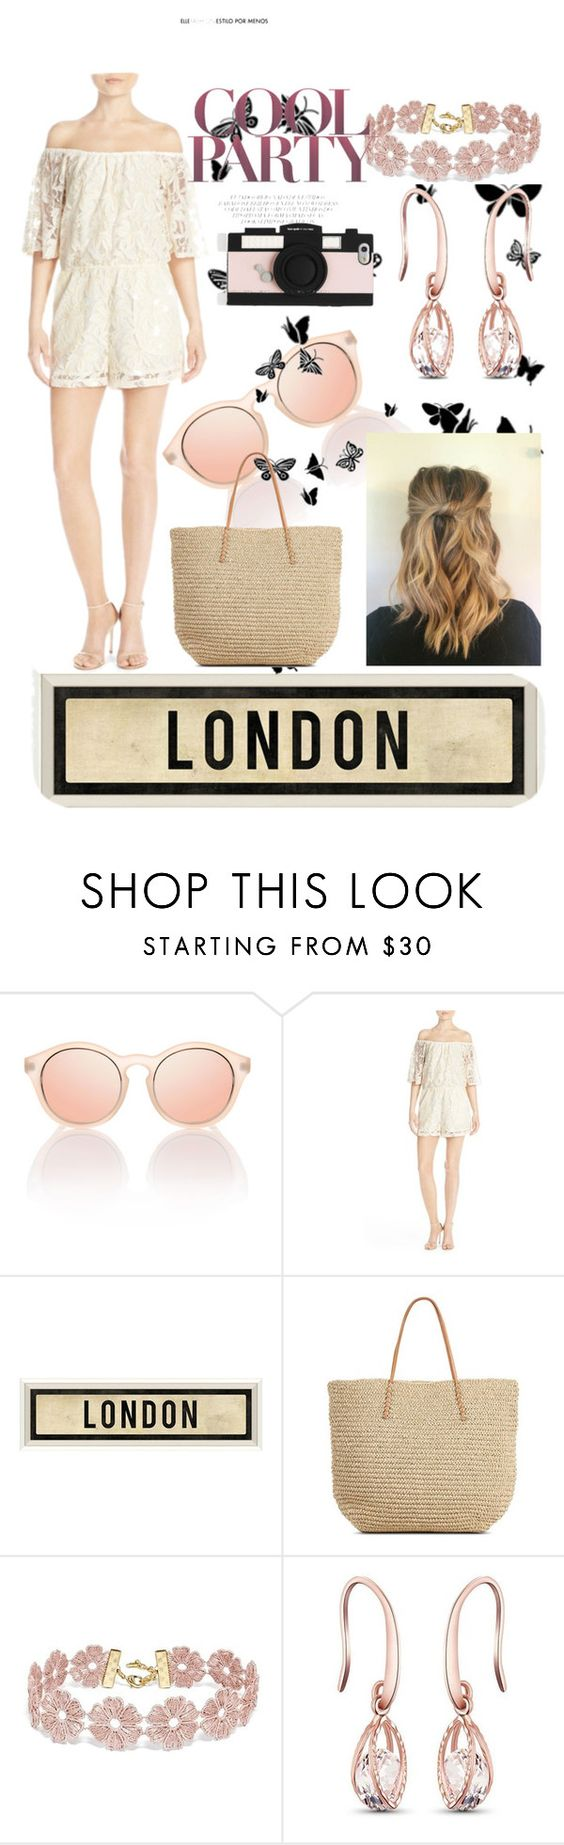 """""""London party"""" by catherineburrows ❤ liked on Polyvore featuring BB Dakota, Dot & Bo, Target, BaubleBar and Kate Spade"""